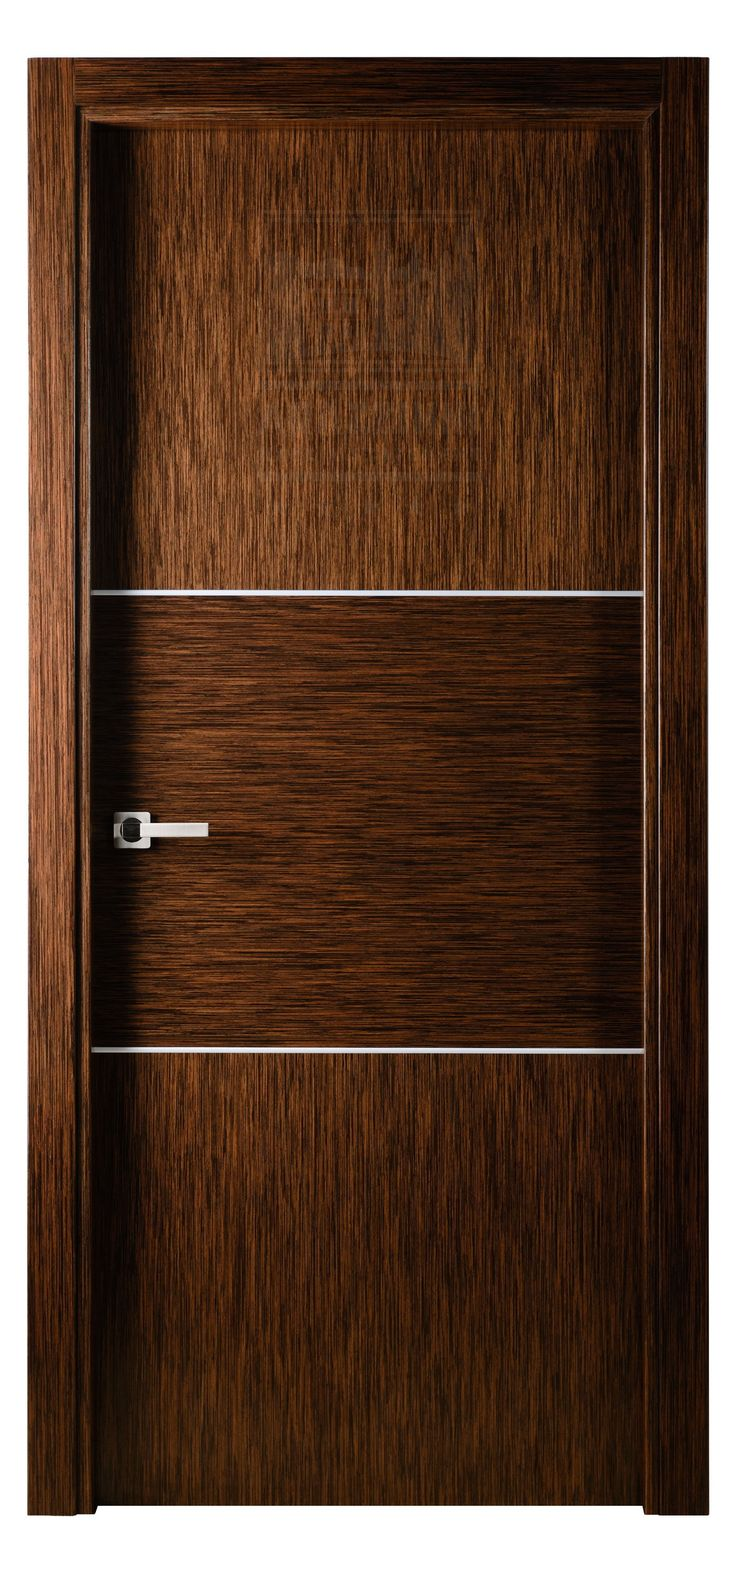 Astra interior door in wenge lacewood finish exotic wood for Wood veneer garage doors